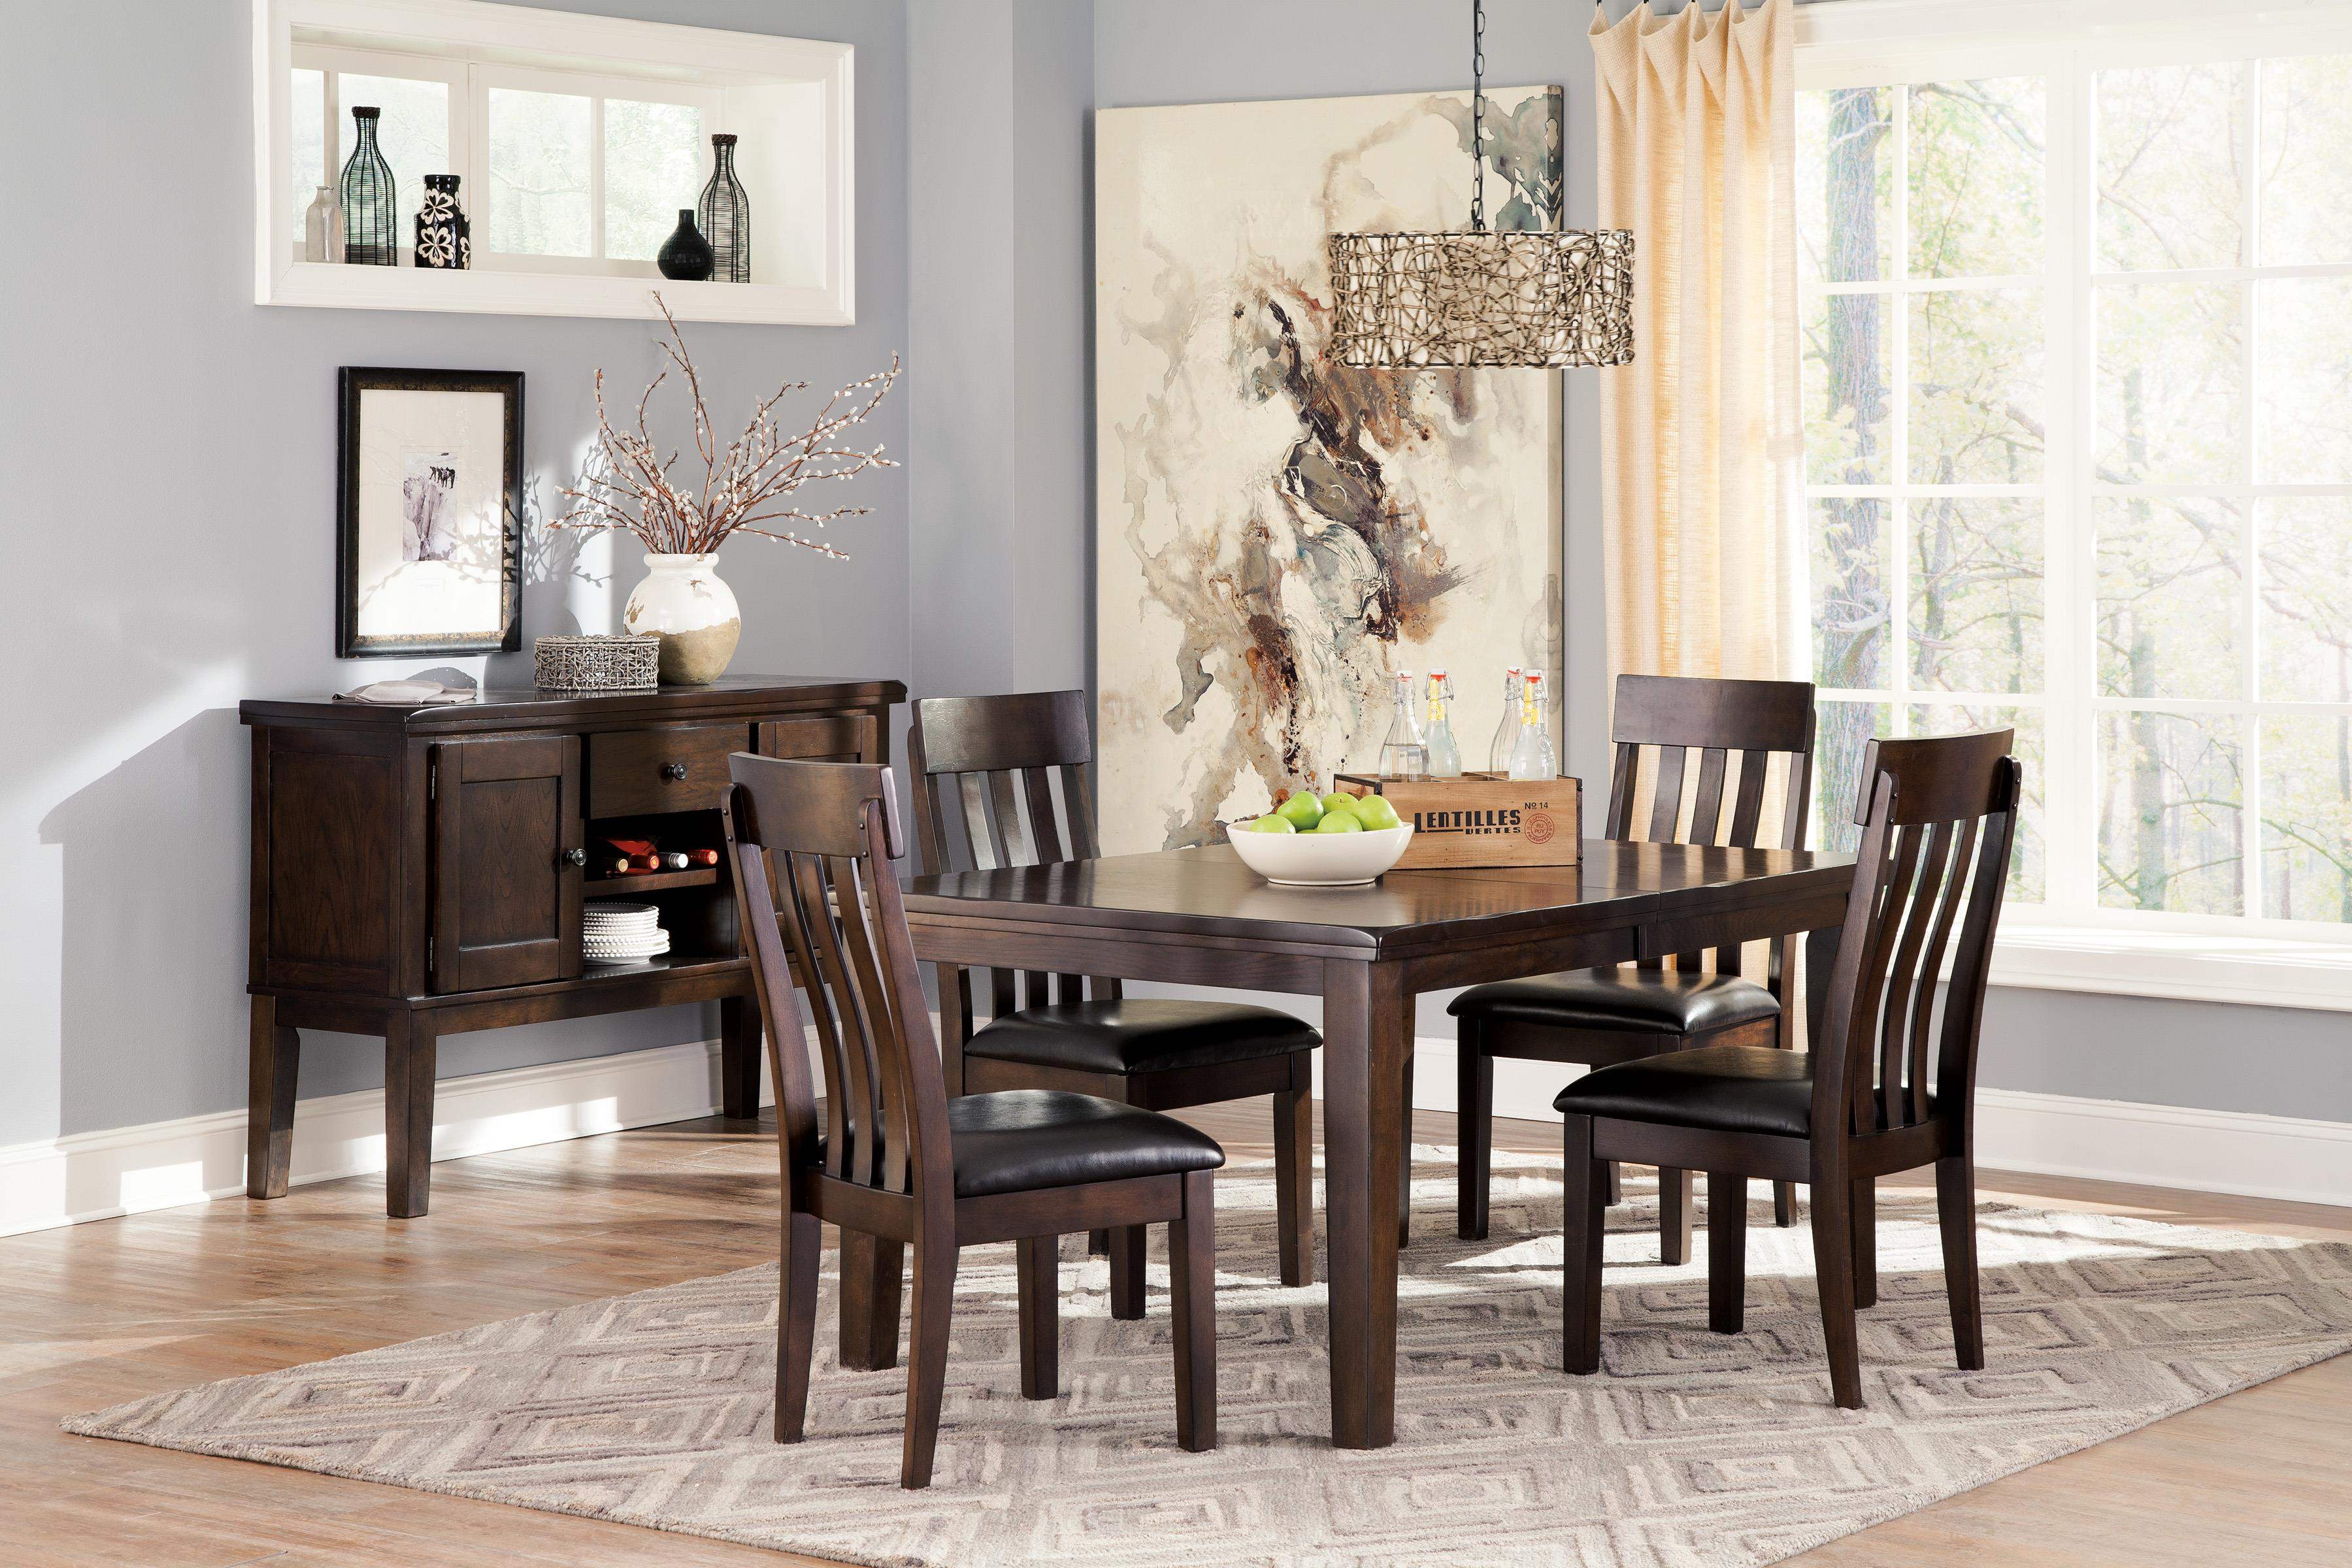 Haddigan Casual Dining Room Group by Signature Design by Ashley at Northeast Factory Direct